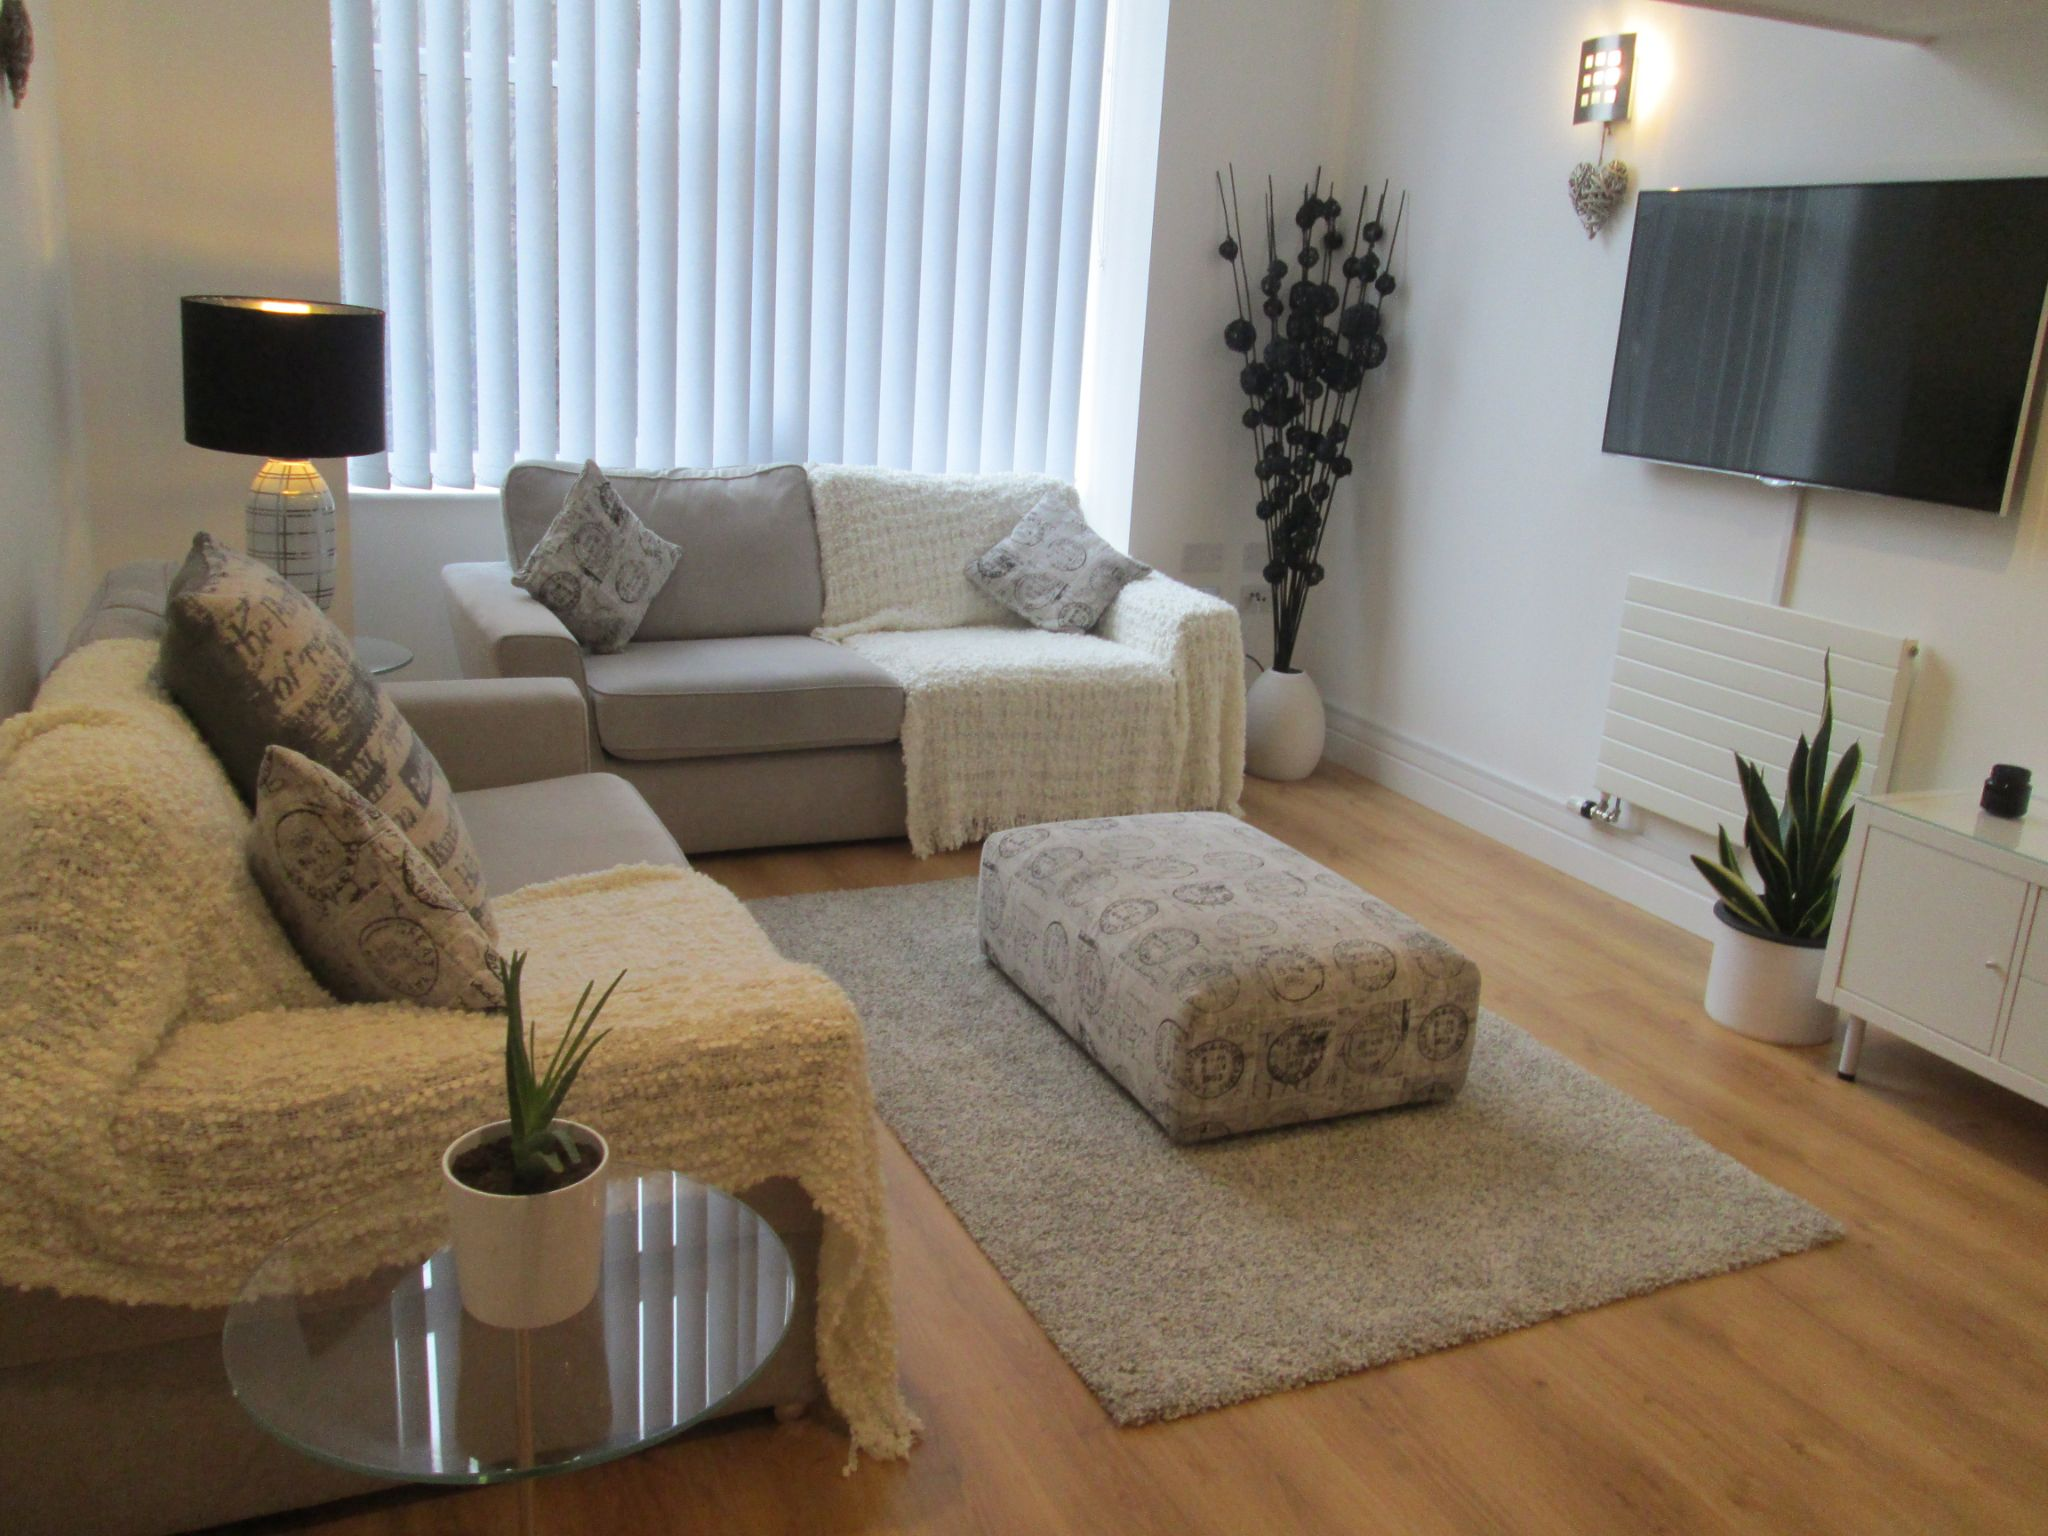 1 bedroom apartment flat/apartment Let in Huddersfield - Lounge area